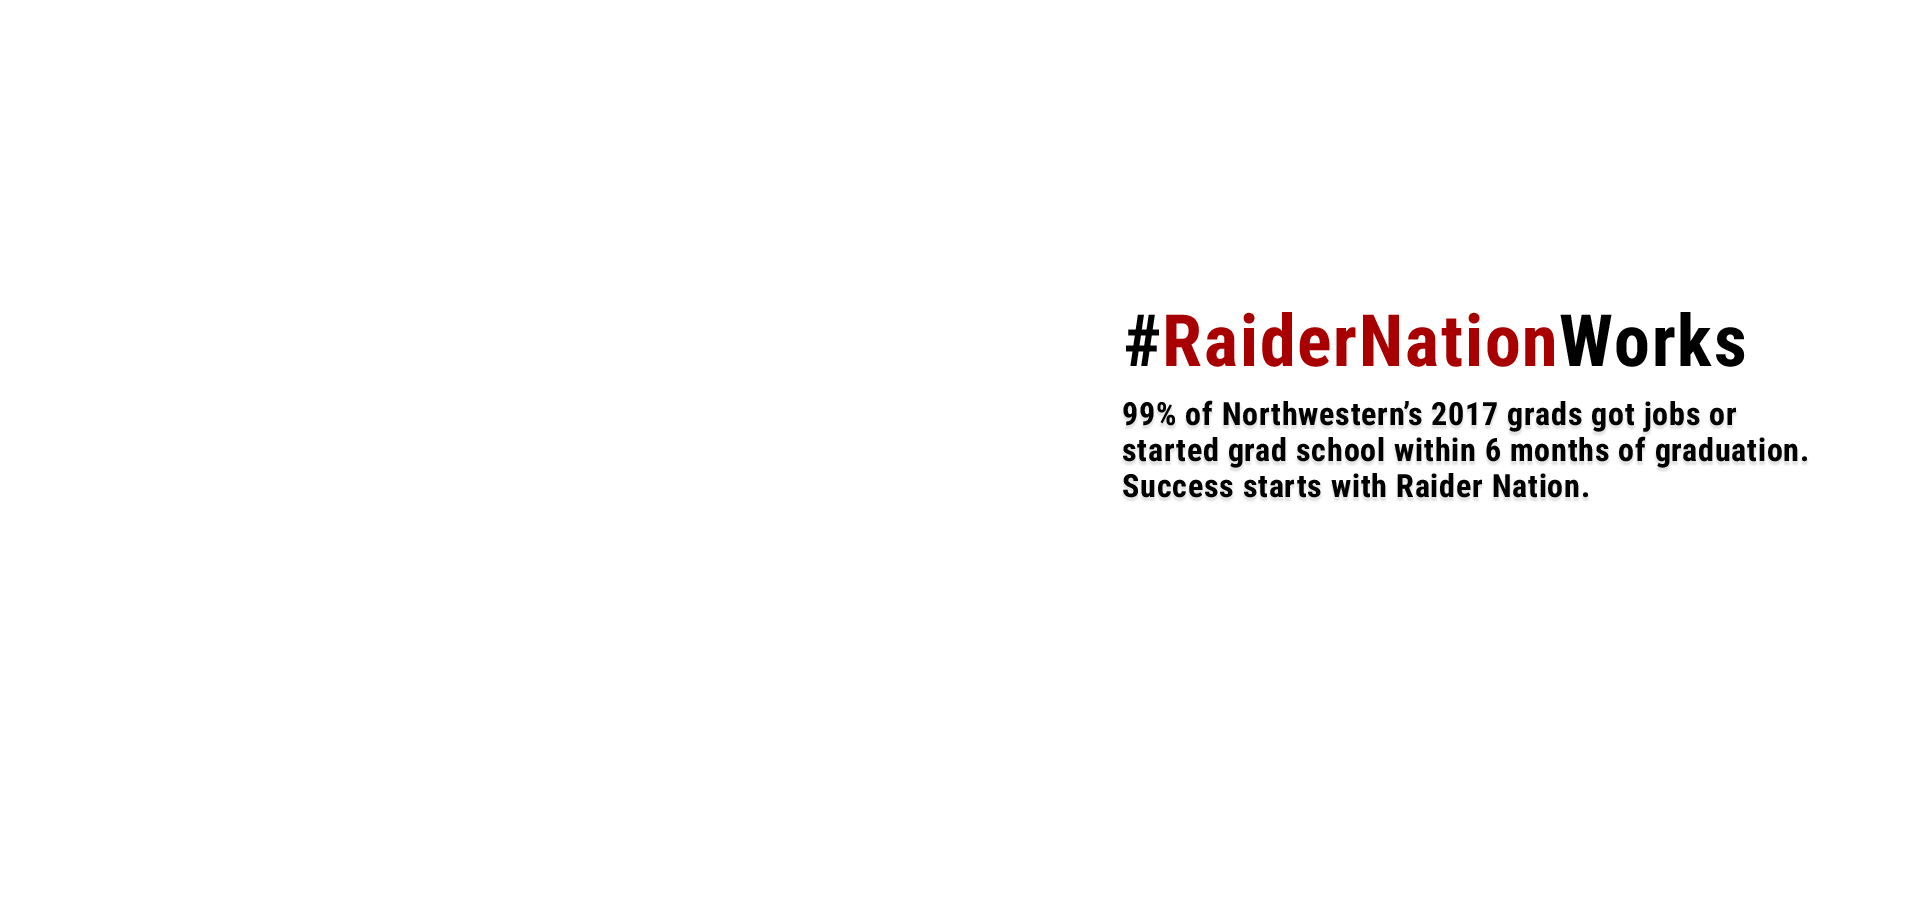 RaiderNationWorks.  99% of Northwestern's 2017 grads got jobs or started grad school. Success starts with Raider Nation.